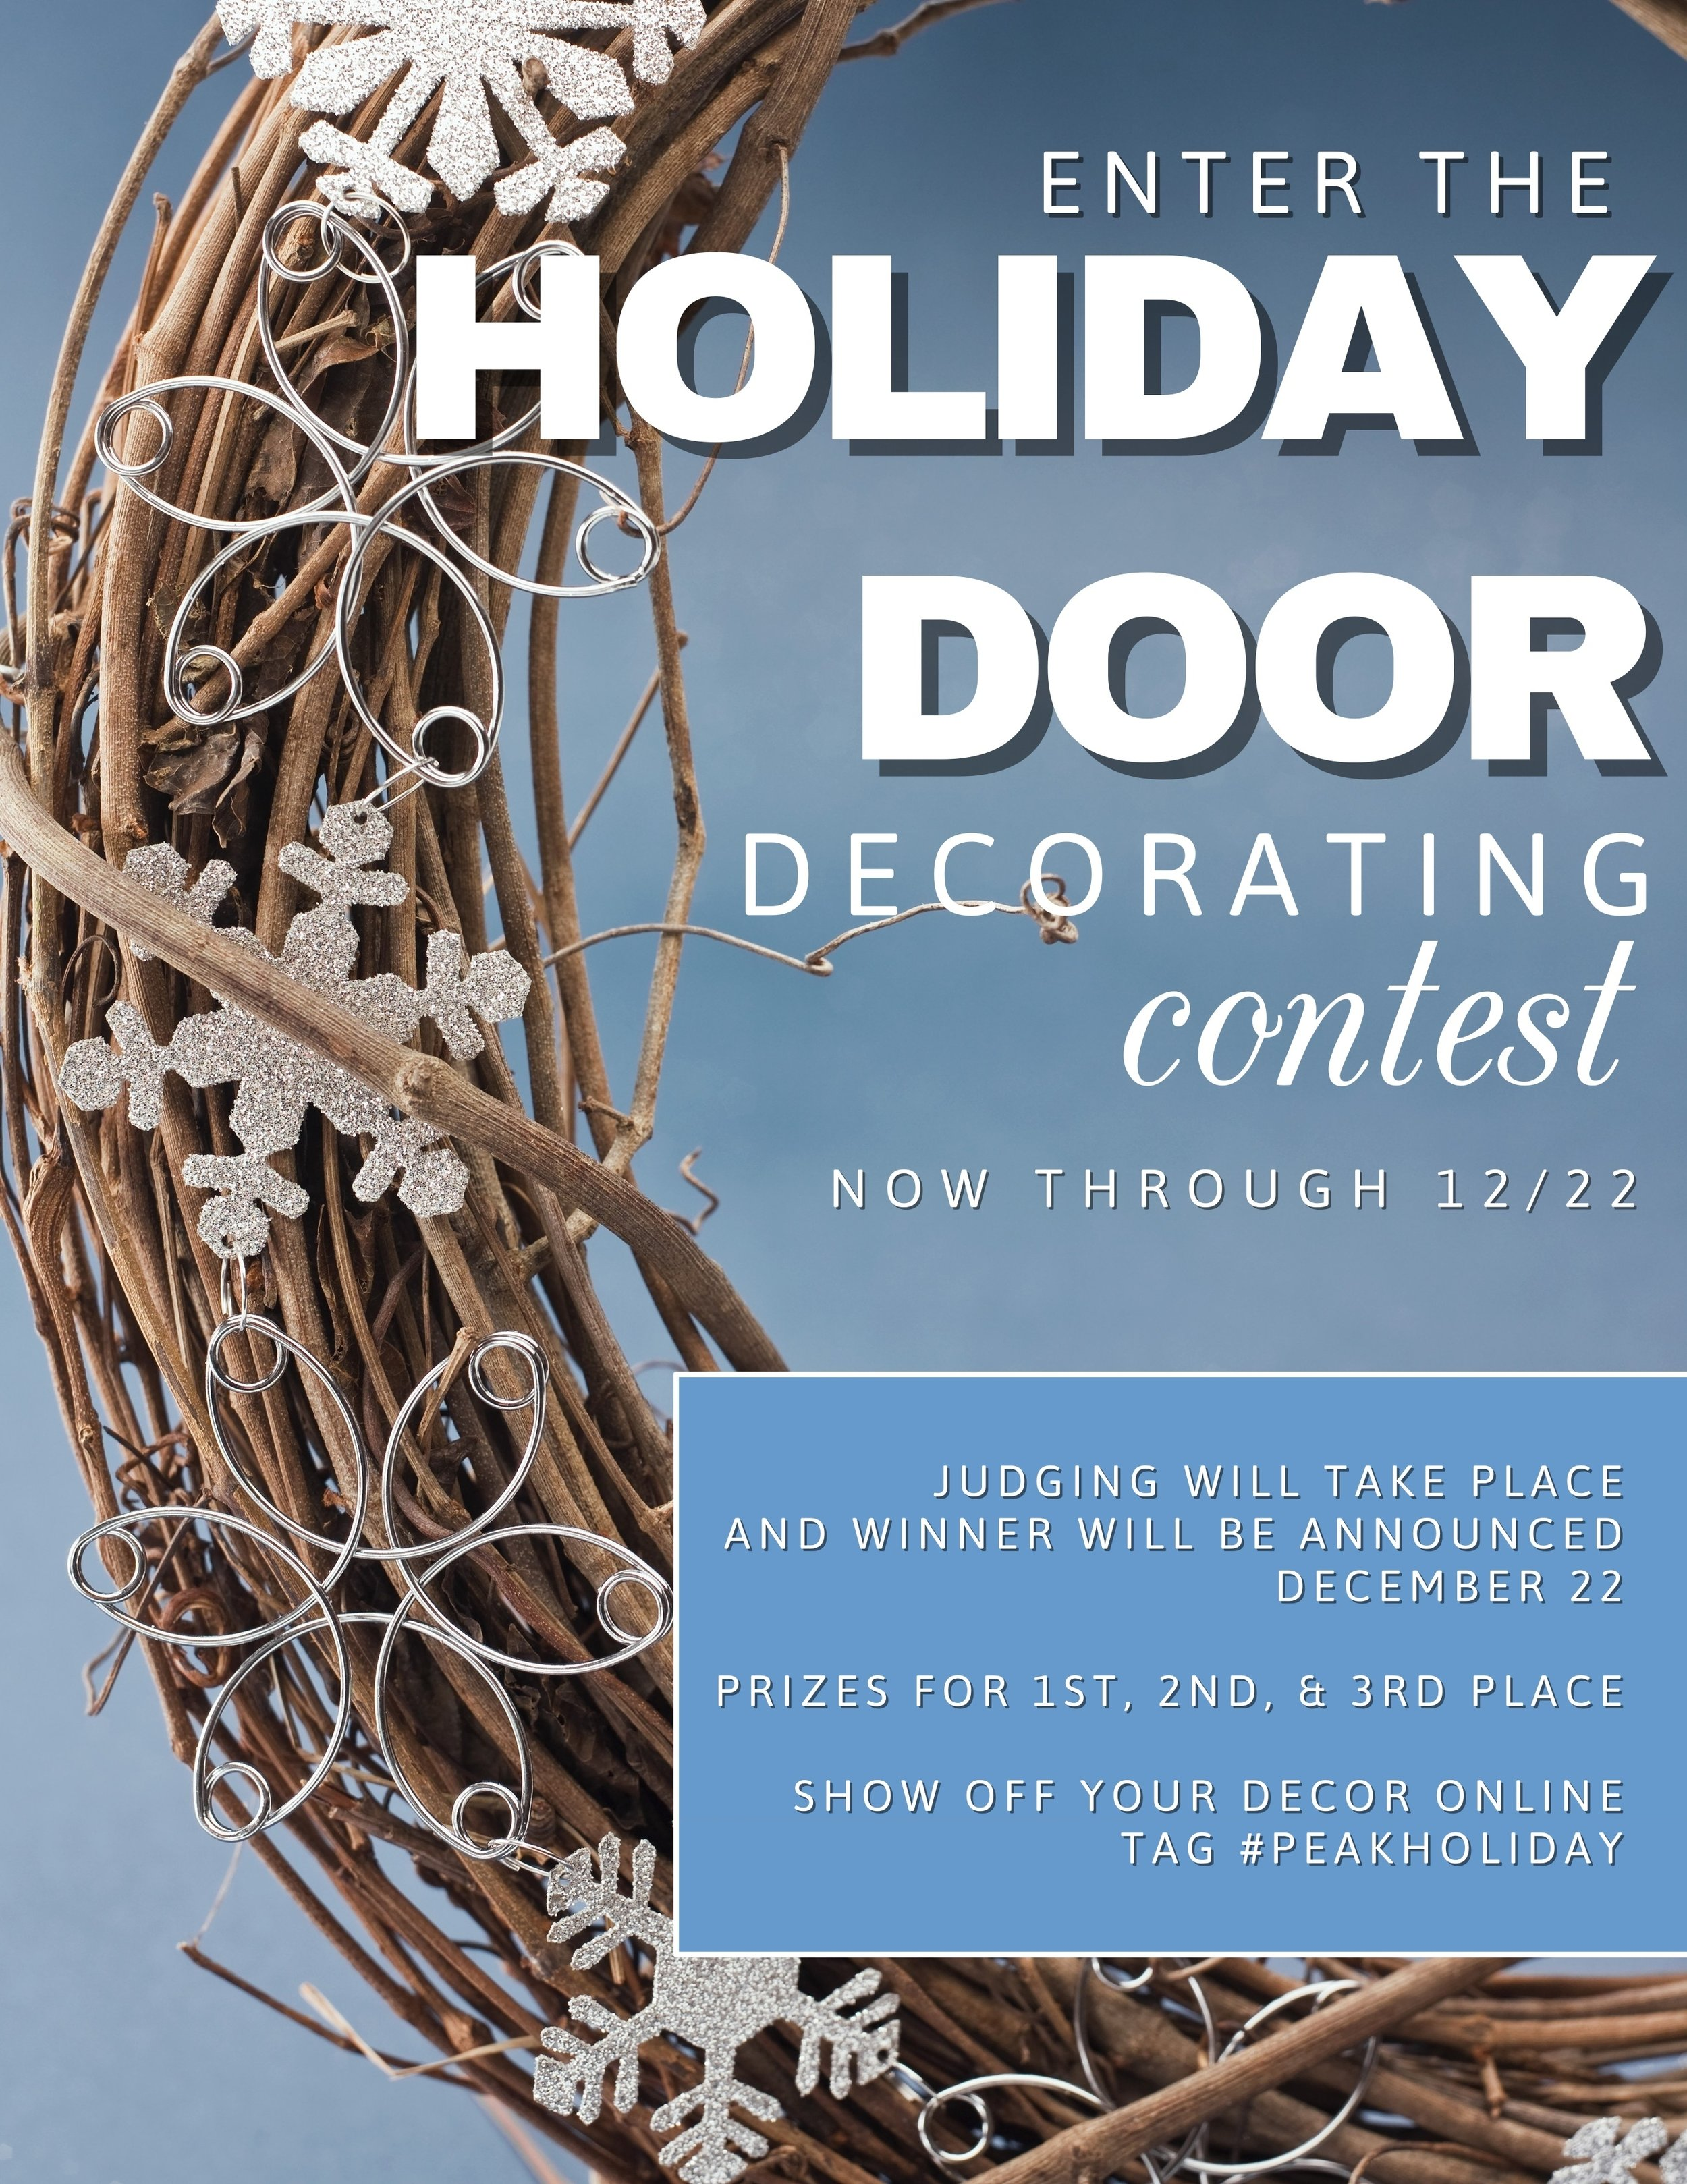 Door Decorating Contest at Rolling Park Apartments in Windsor Mill, MD 21244